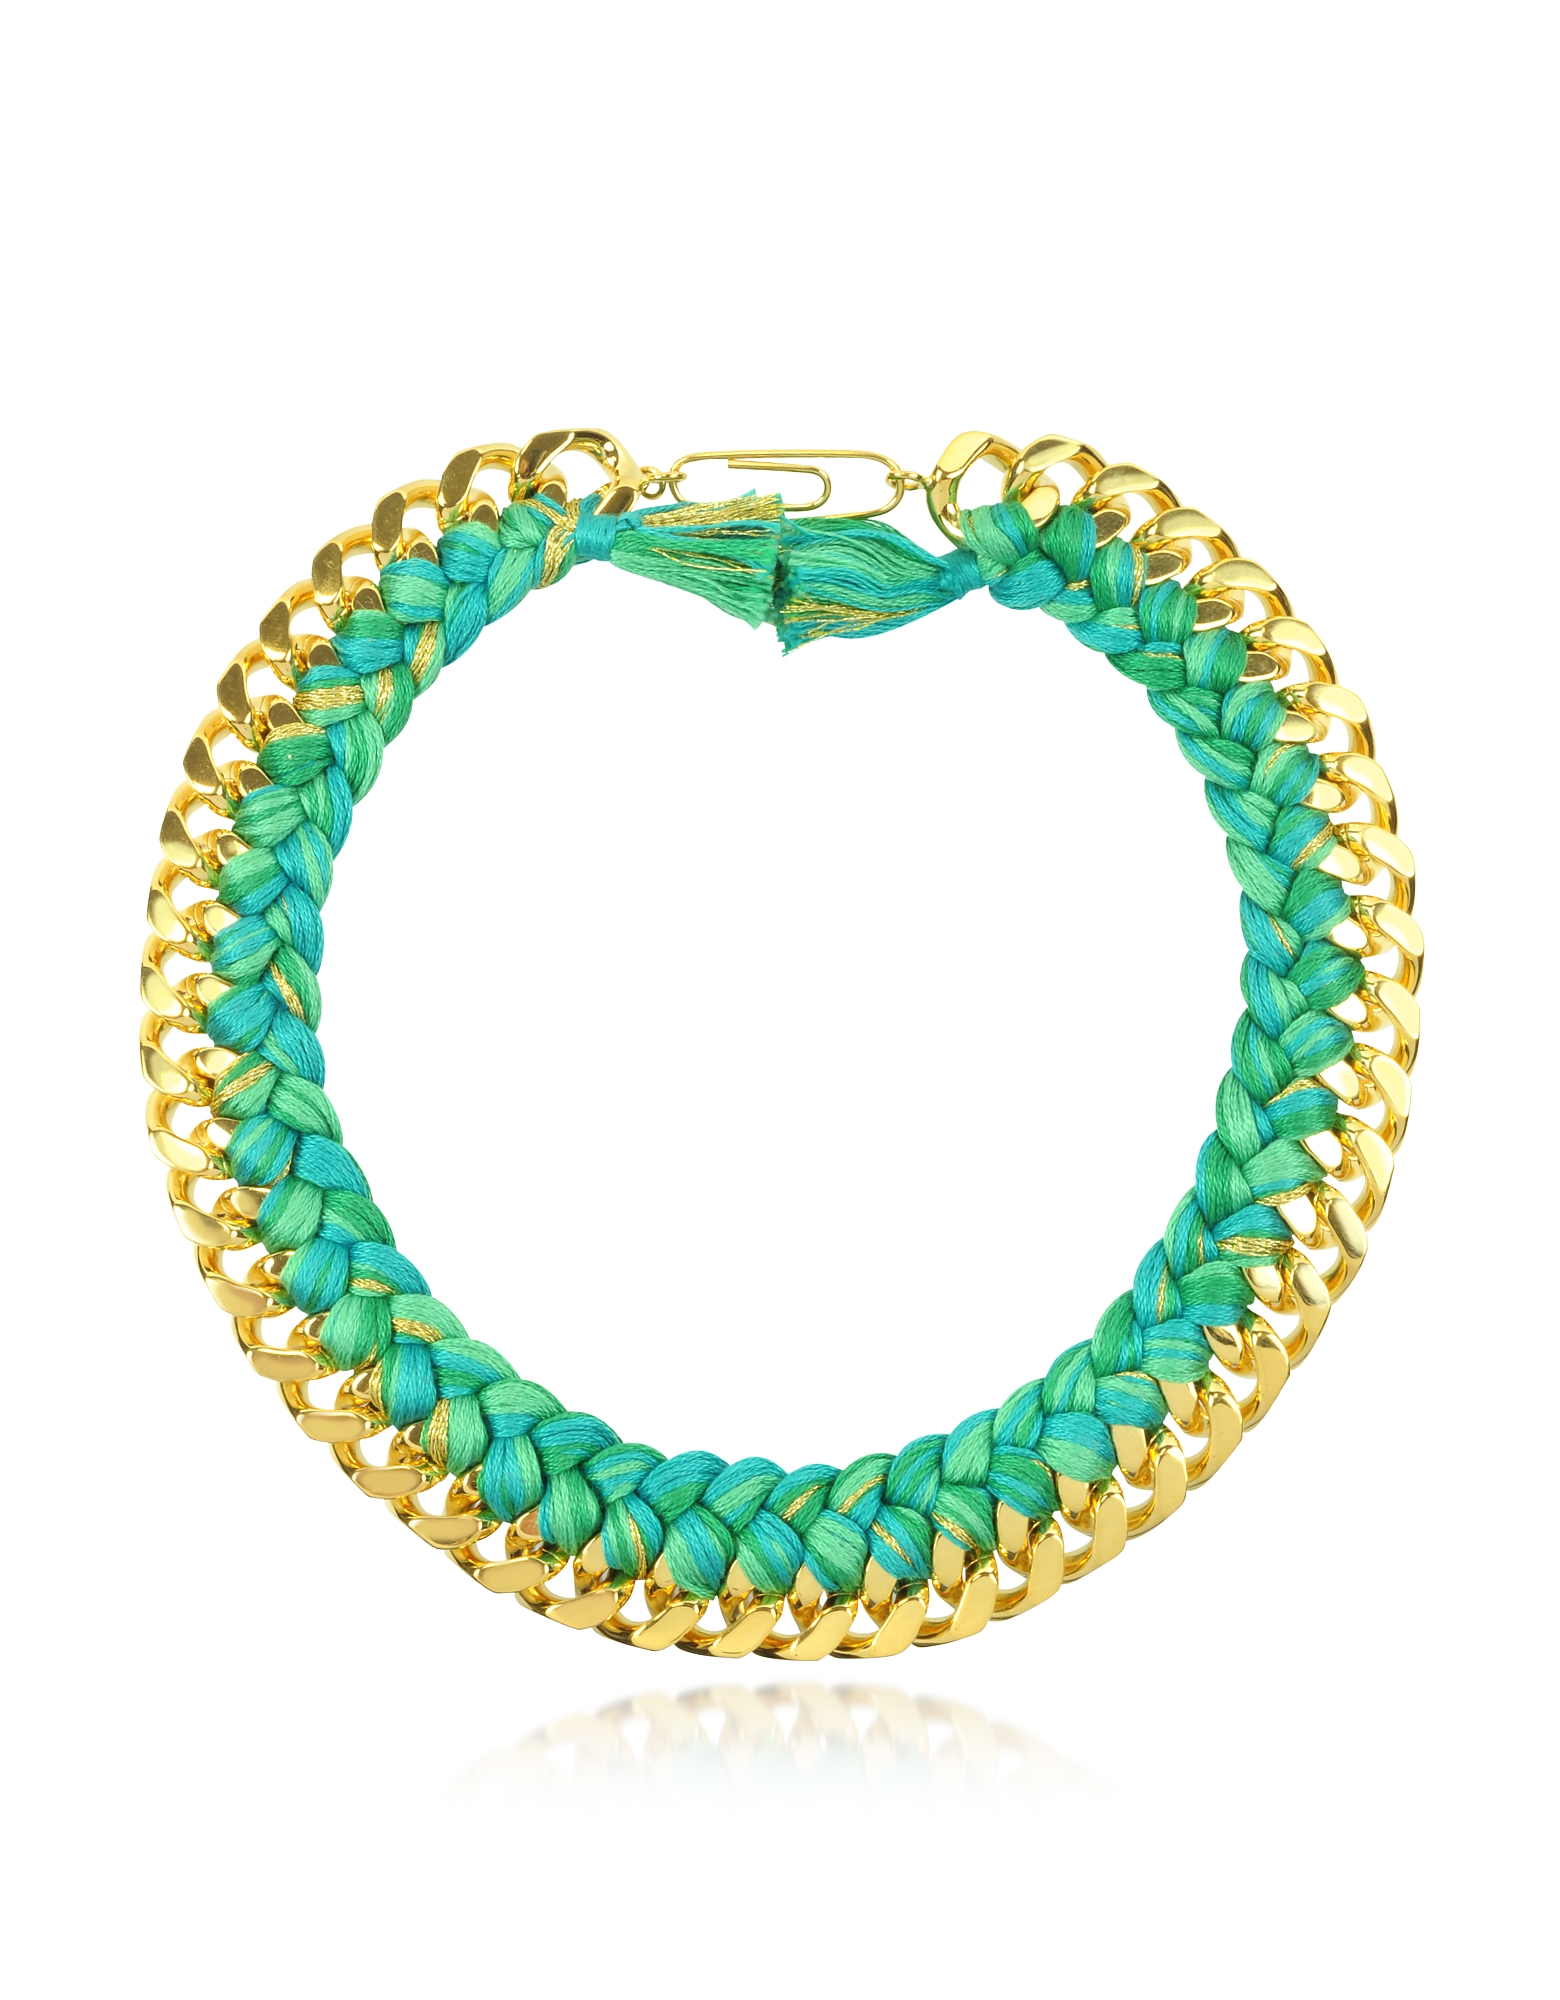 Aurelie Bidermann Necklaces, Do Brasil Gold and Cotton Necklace